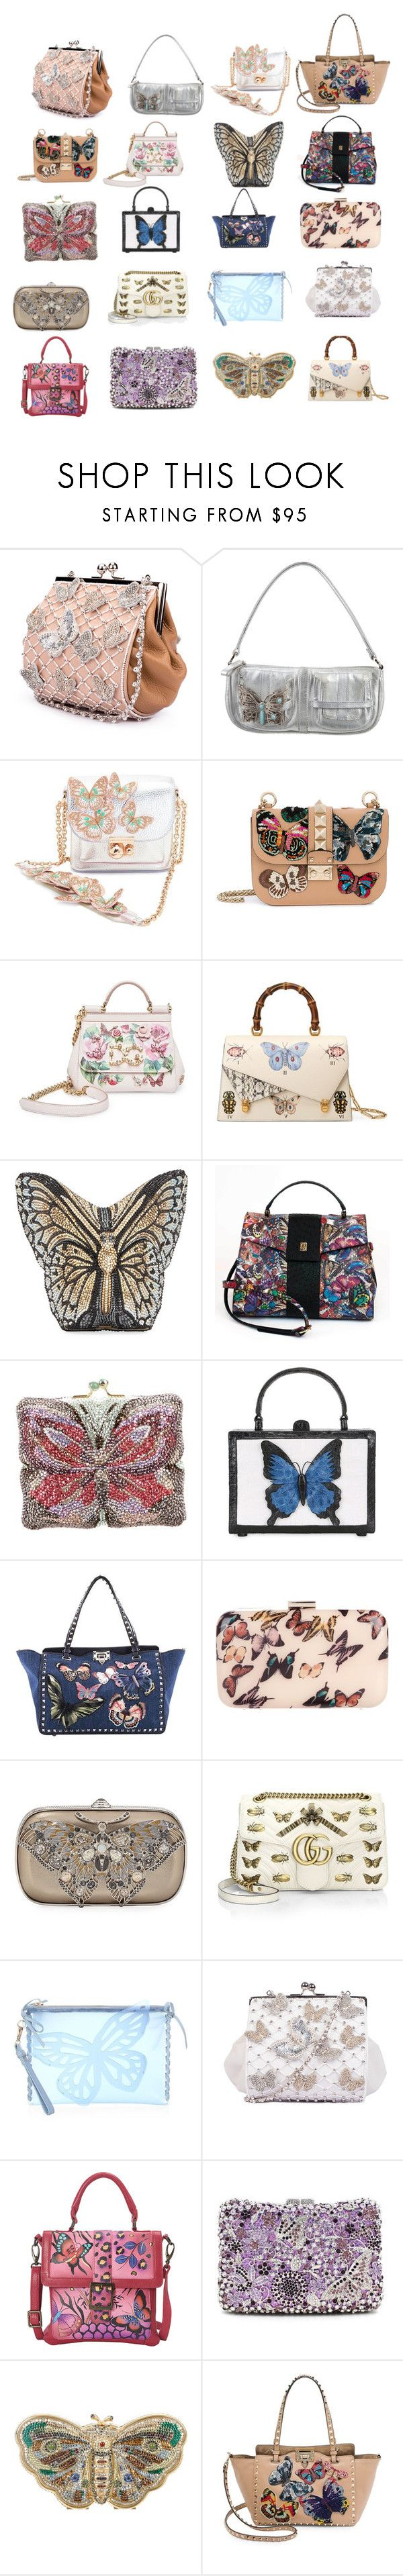 """20 Amazing Butterfly Bags"" by ladyminafashion on Polyvore featuring Valentino, Sophia Webster, Dolce&Gabbana, Gucci, Judith Leiber, Nancy Gonzalez, Ted Baker and Anuschka"